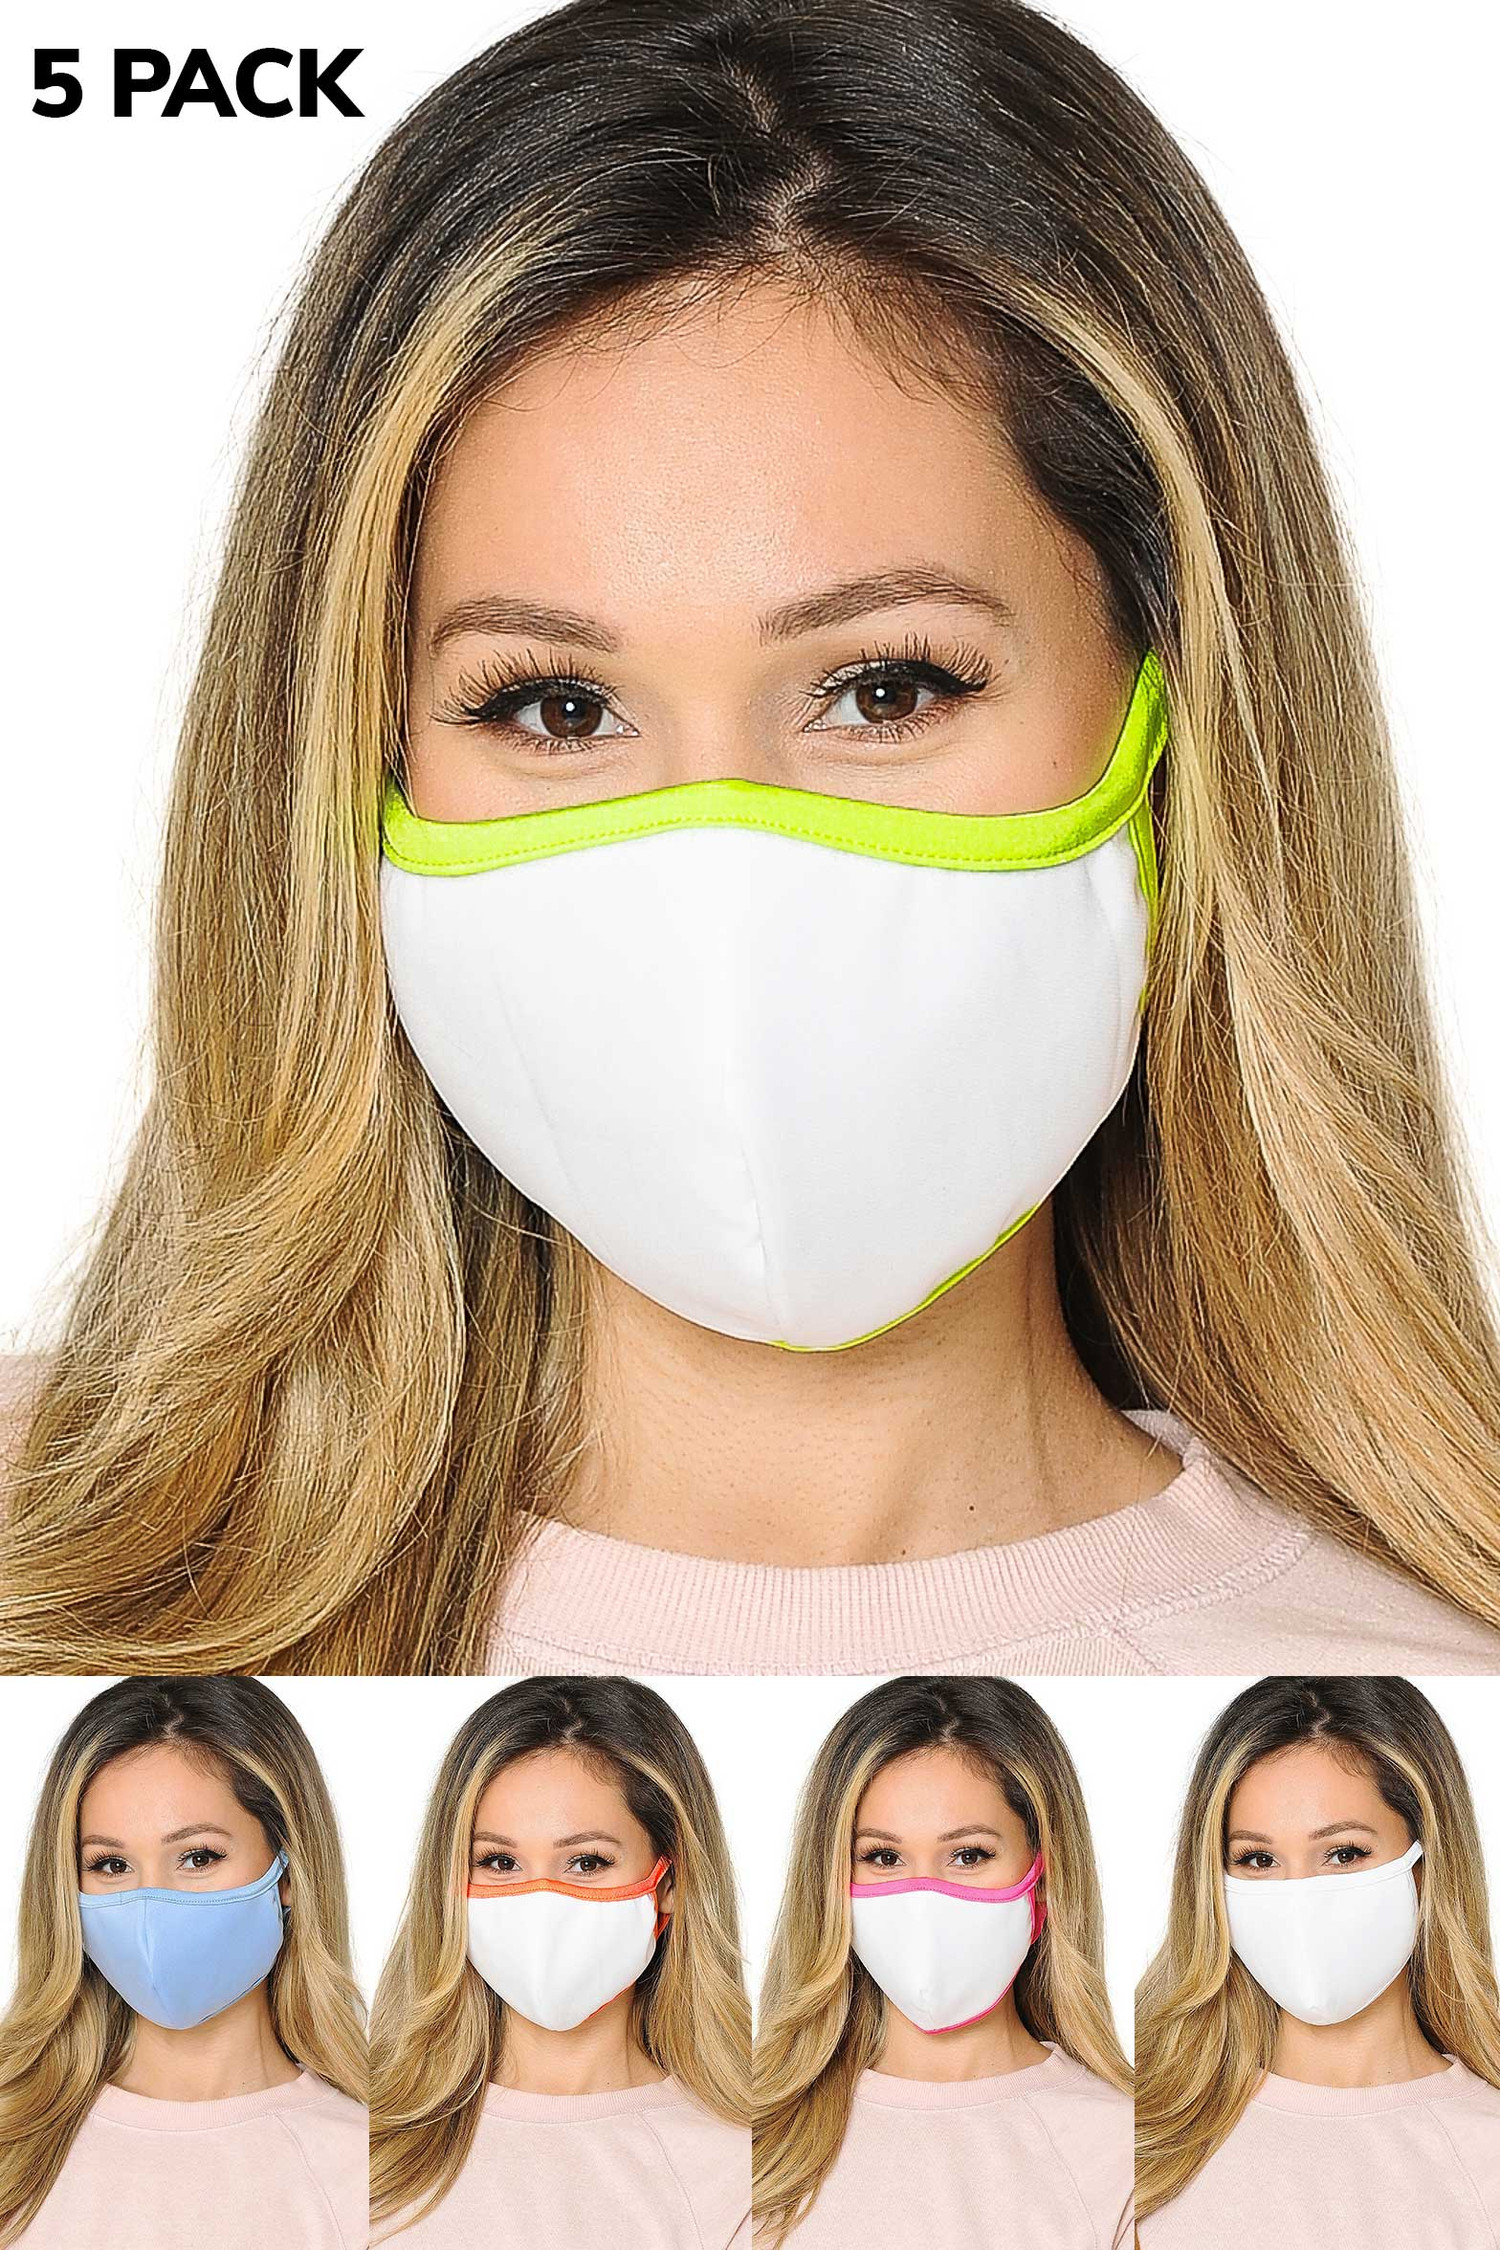 5 Pack - 2 Ply Cotton Inner Silky Scuba Outer Face Masks - Made in the USA - Reusable